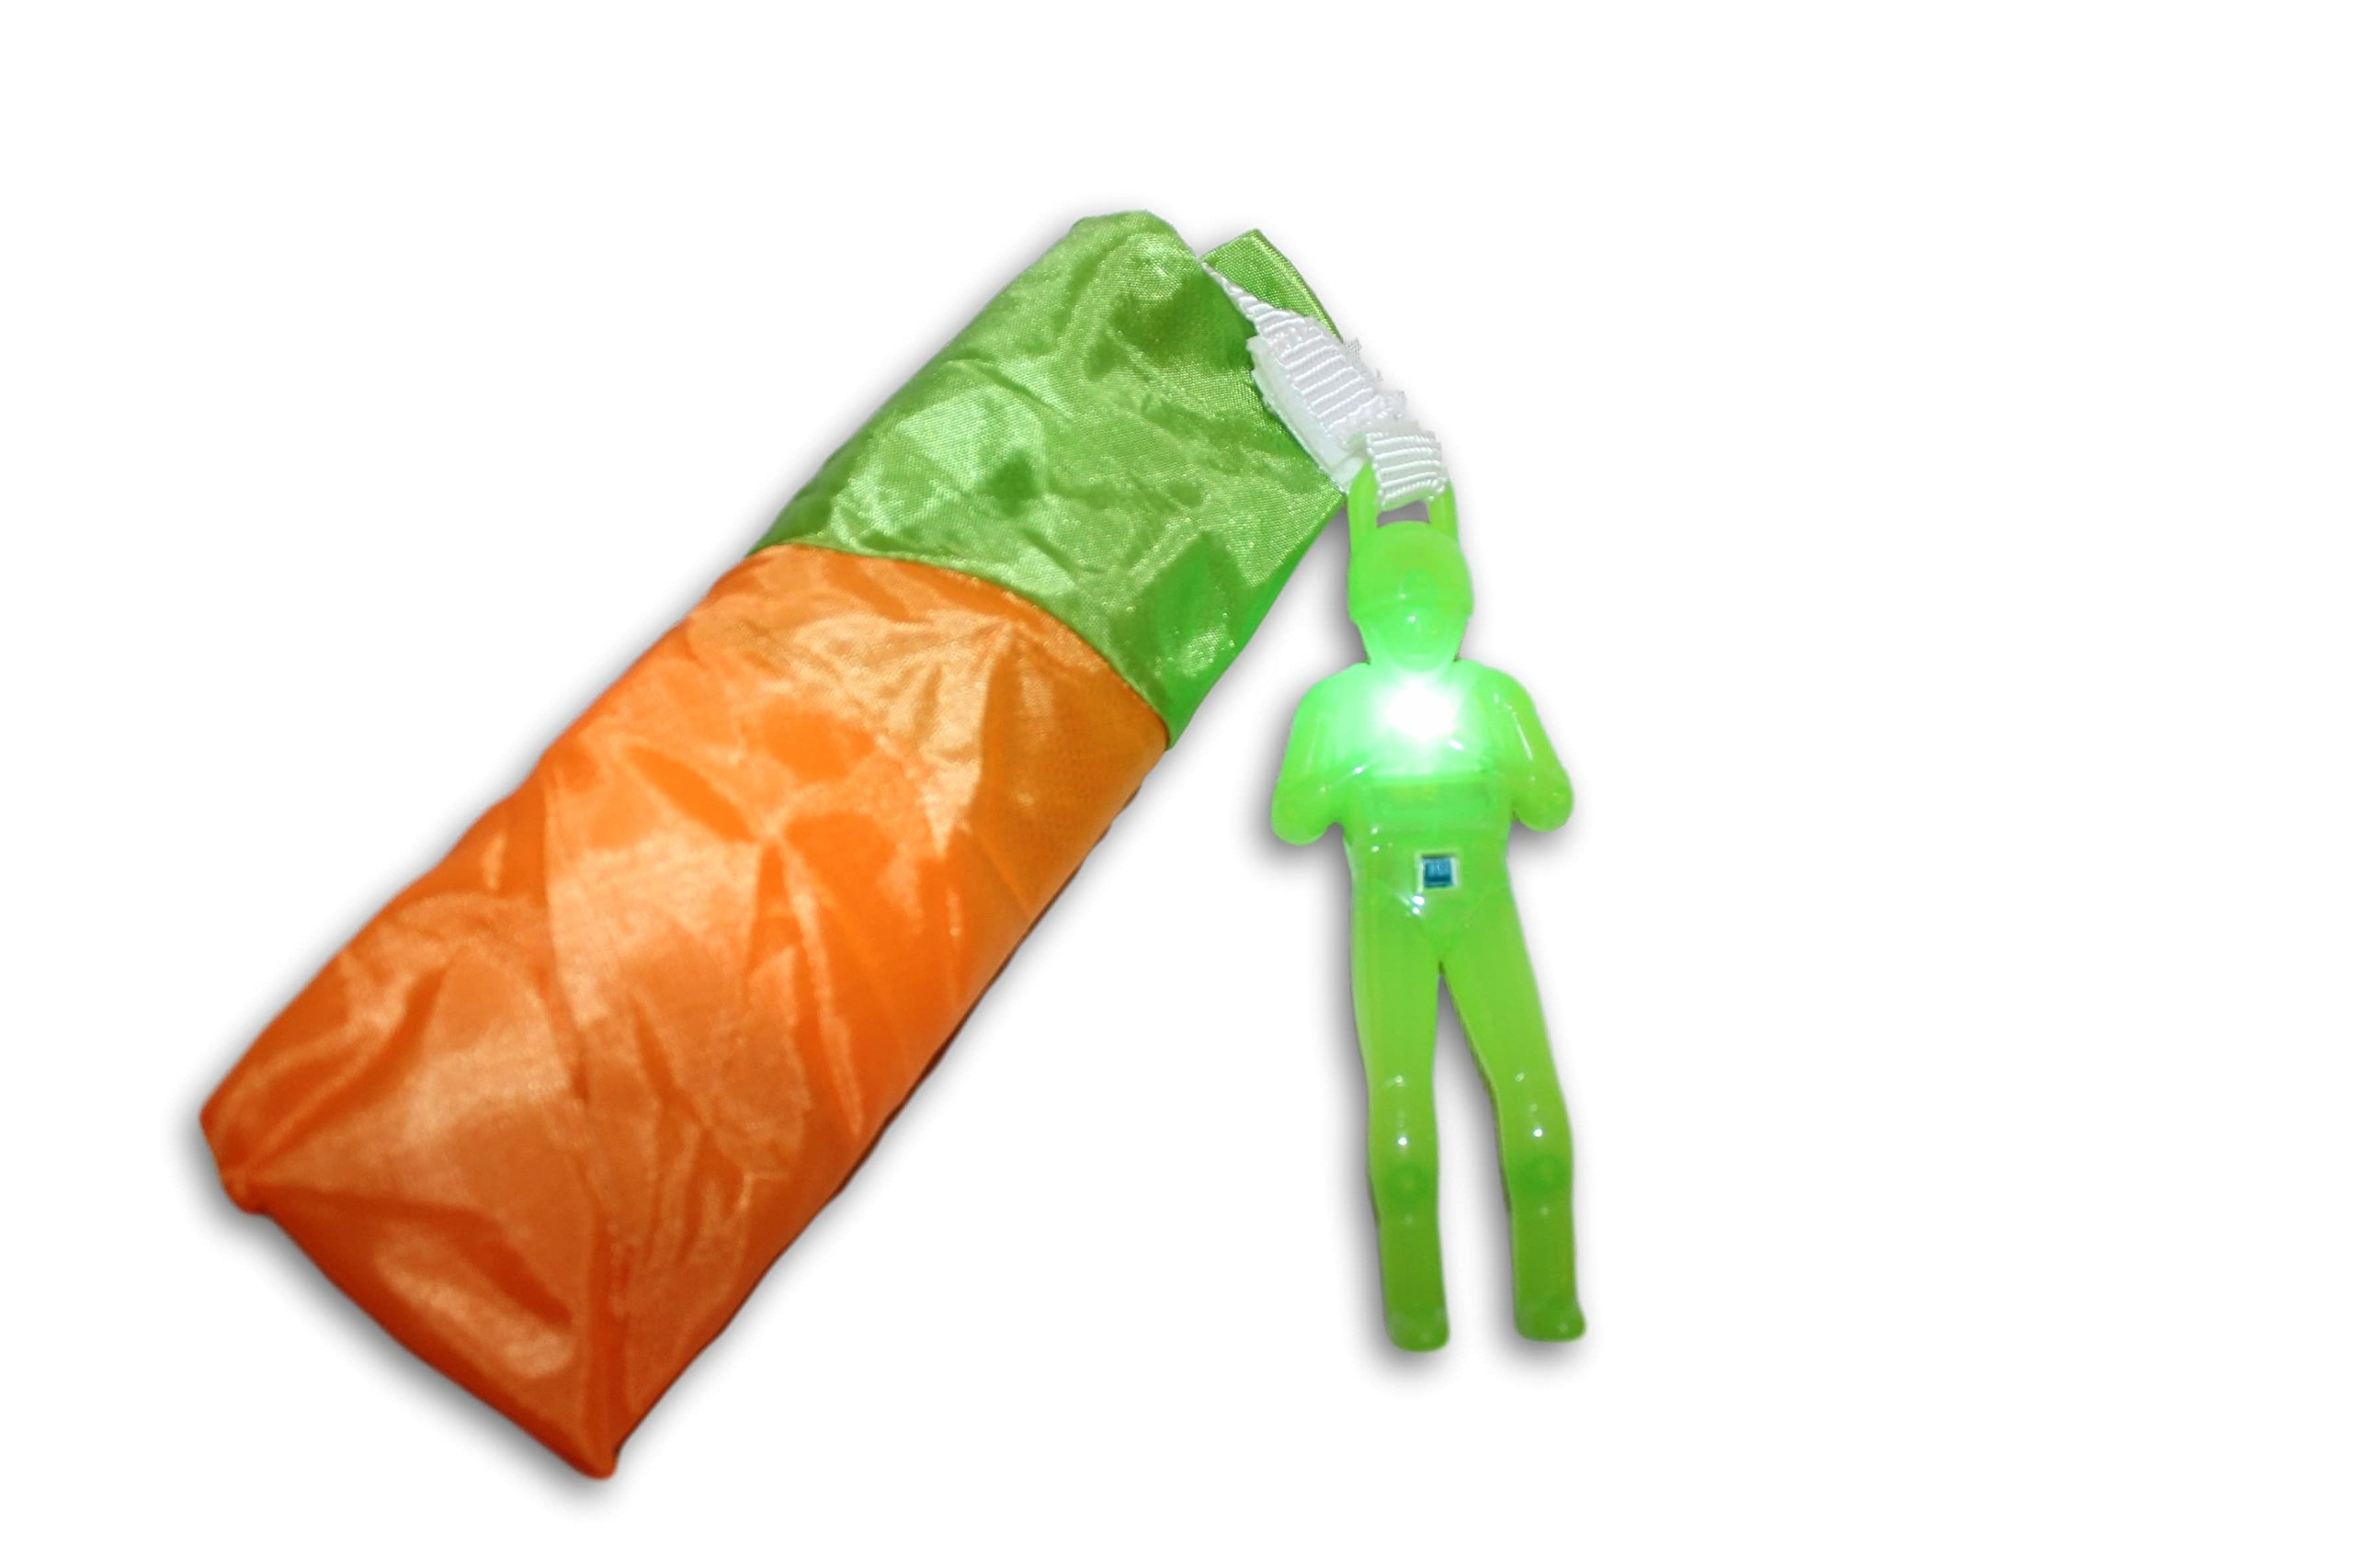 Toys+ Tangle Free Parachute Man Skydiver 1 Piece Great For Easter Baskets (Pick Your Color!)